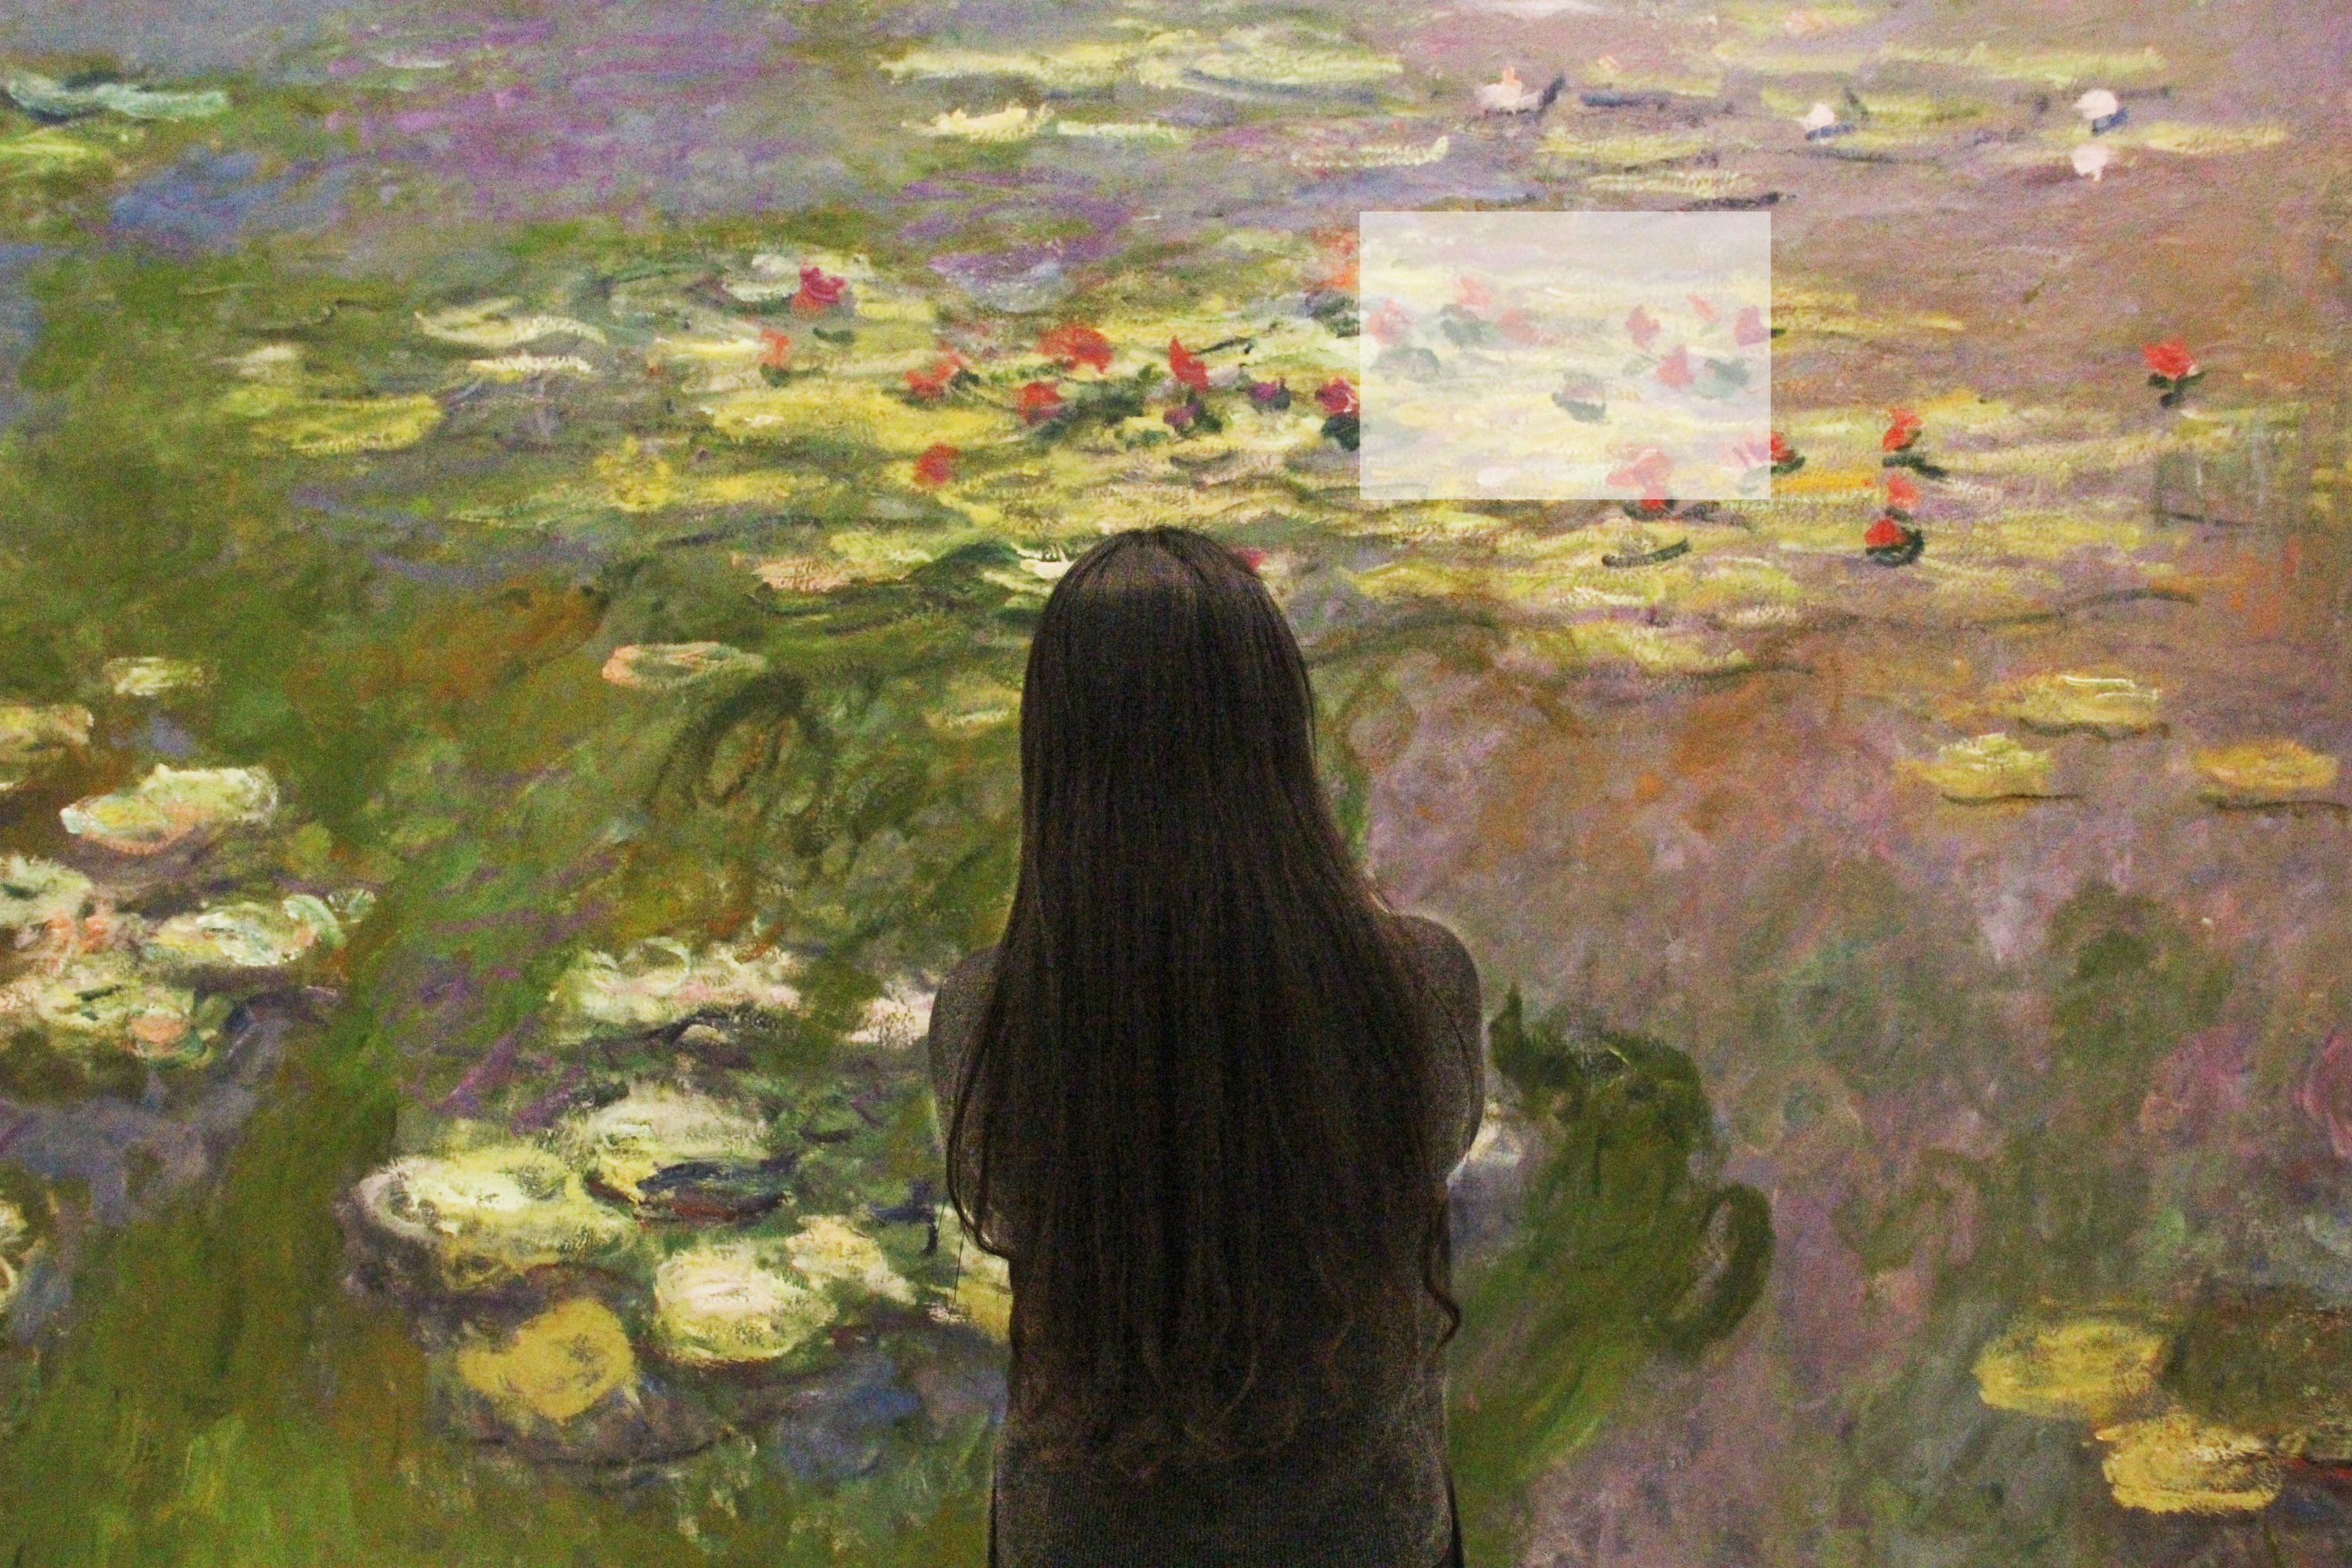 CMoA Learning Experience Redesign:Enhance and create a more dynamic user learning experience in Carnegie Museum of Art through hybrid environments combining Augmented Reality, mobile app, and the physical gallery